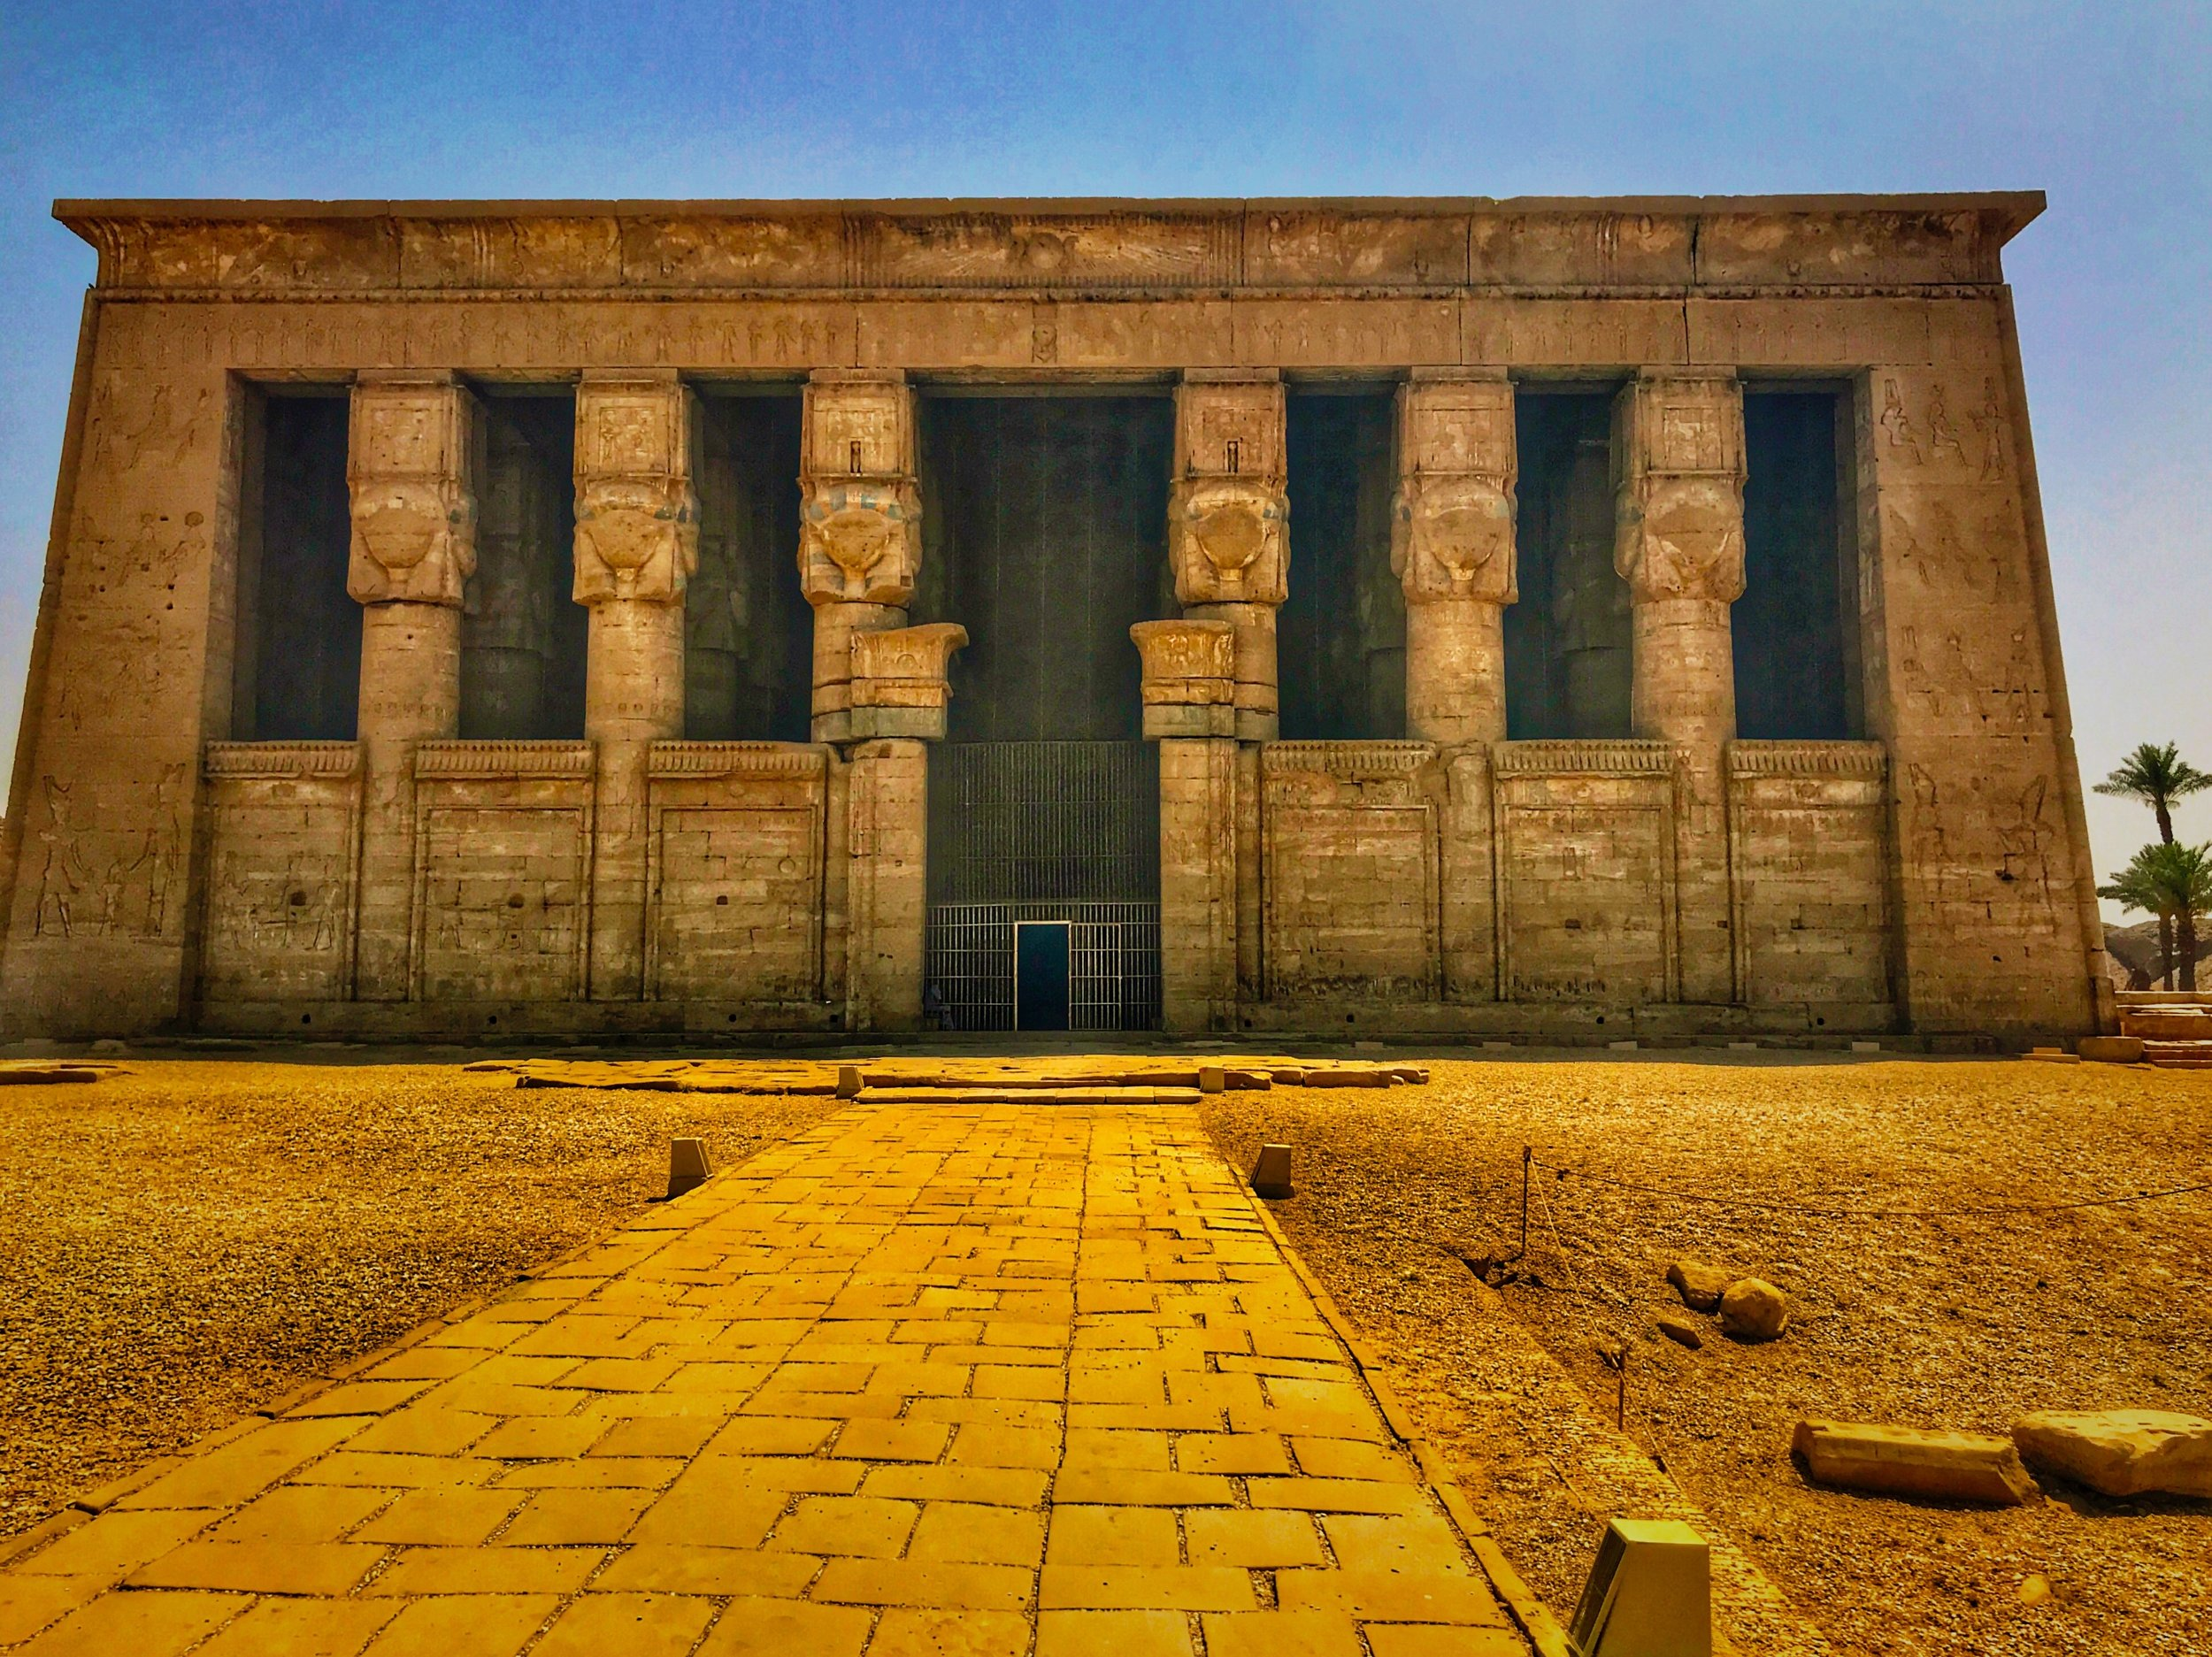 Dendera's Temple of Hathor has stood for 2,000 years